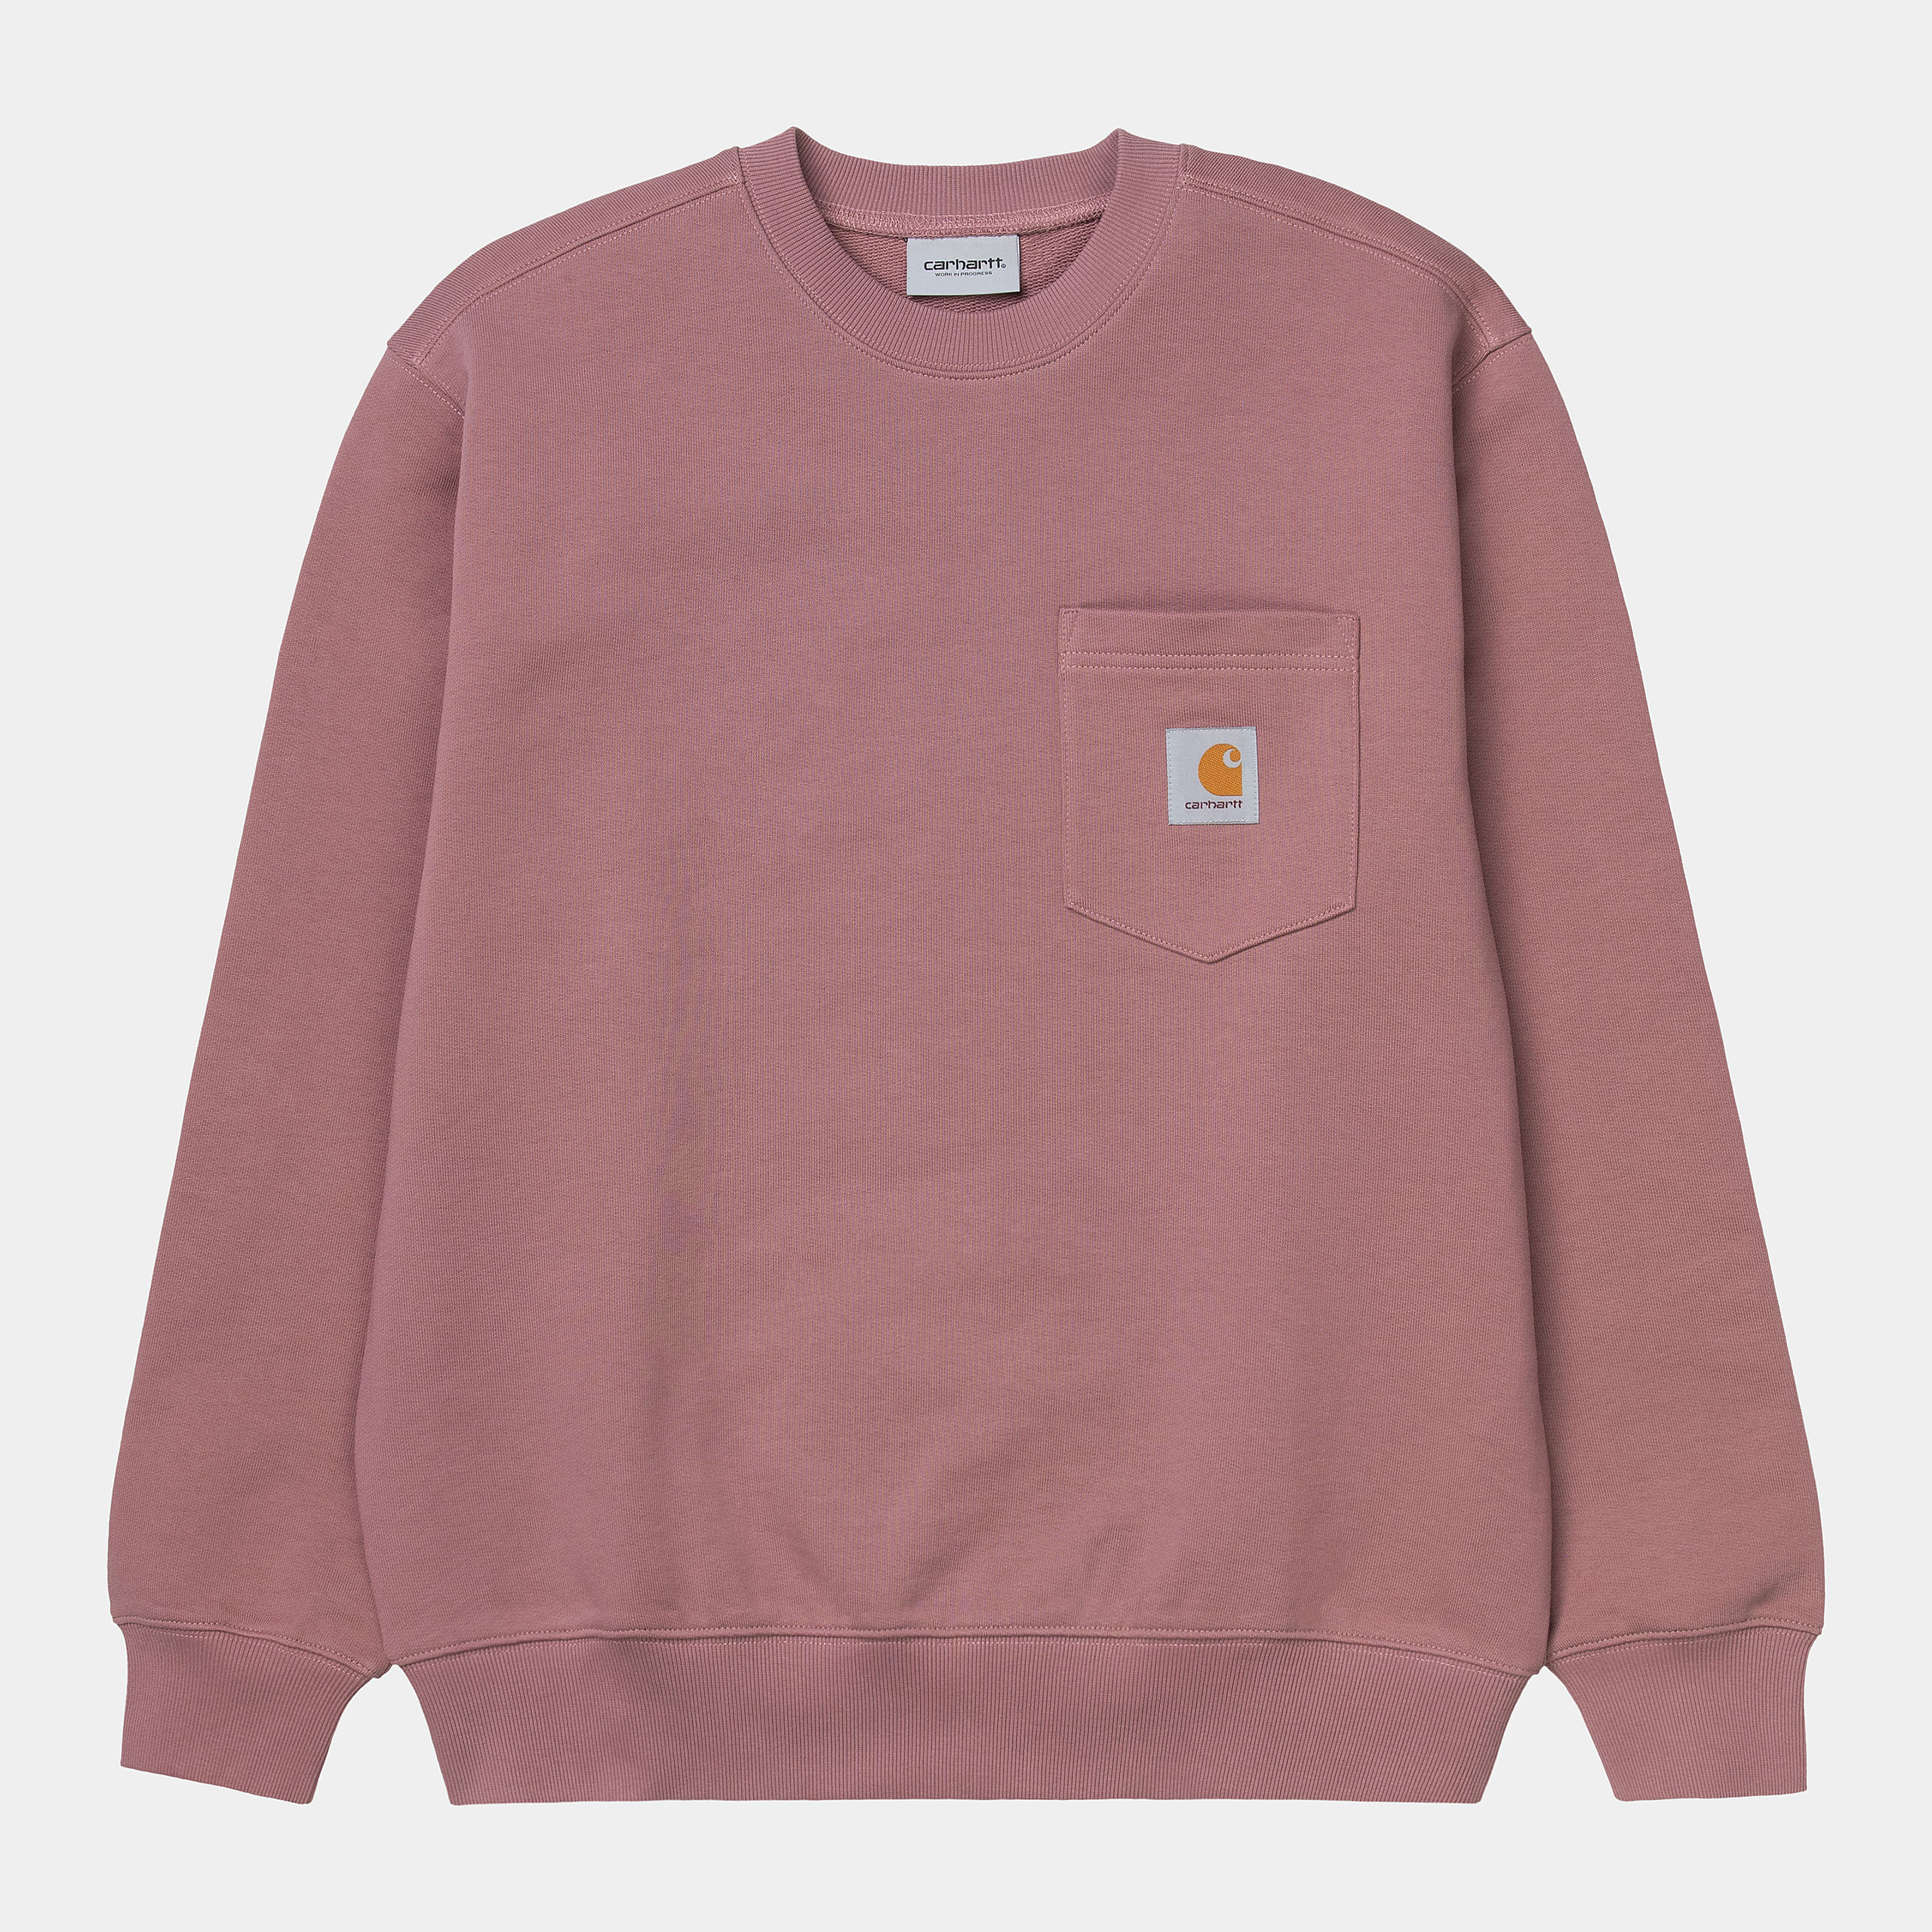 Carhartt WIP - POCKET SWEAT - Malaga